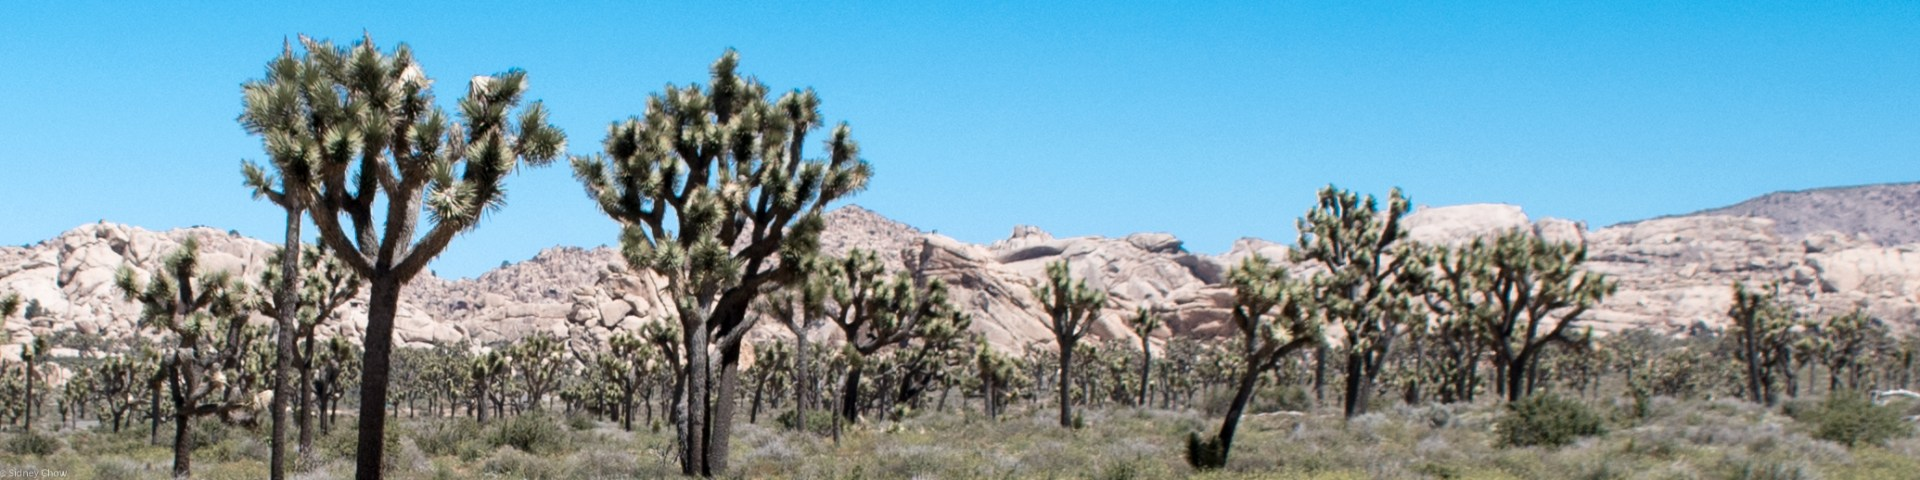 Joshua Tree National Park Featured Photo